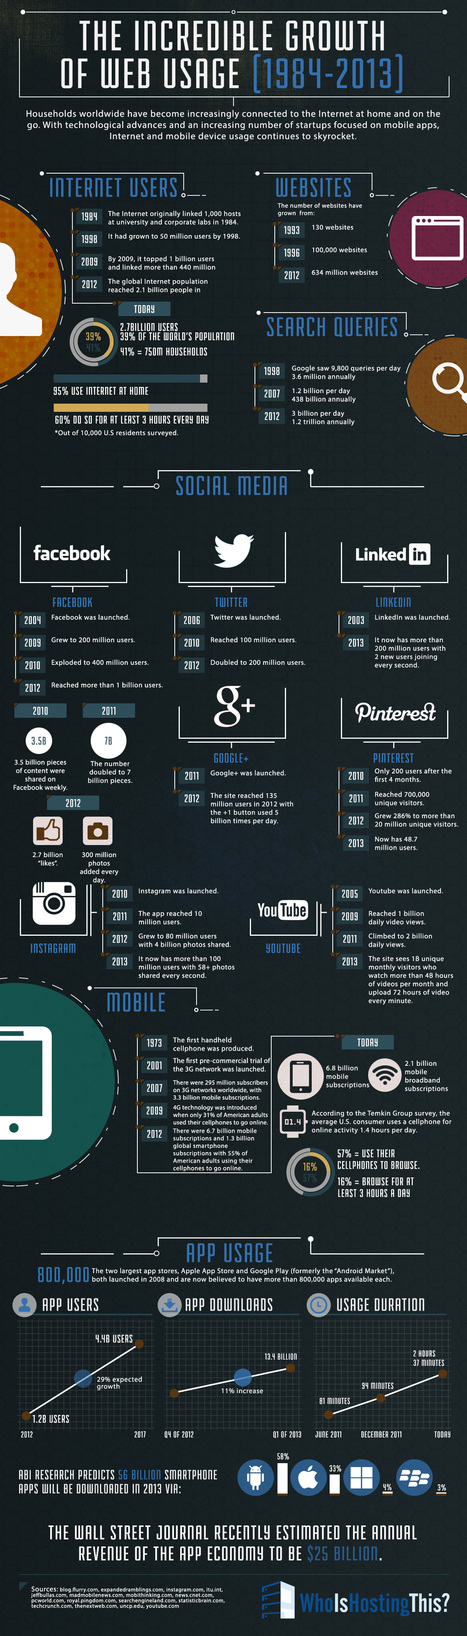 Infographic: The Incredible Growth of Web Usage [1984-2013] | Marketing SEO | Scoop.it